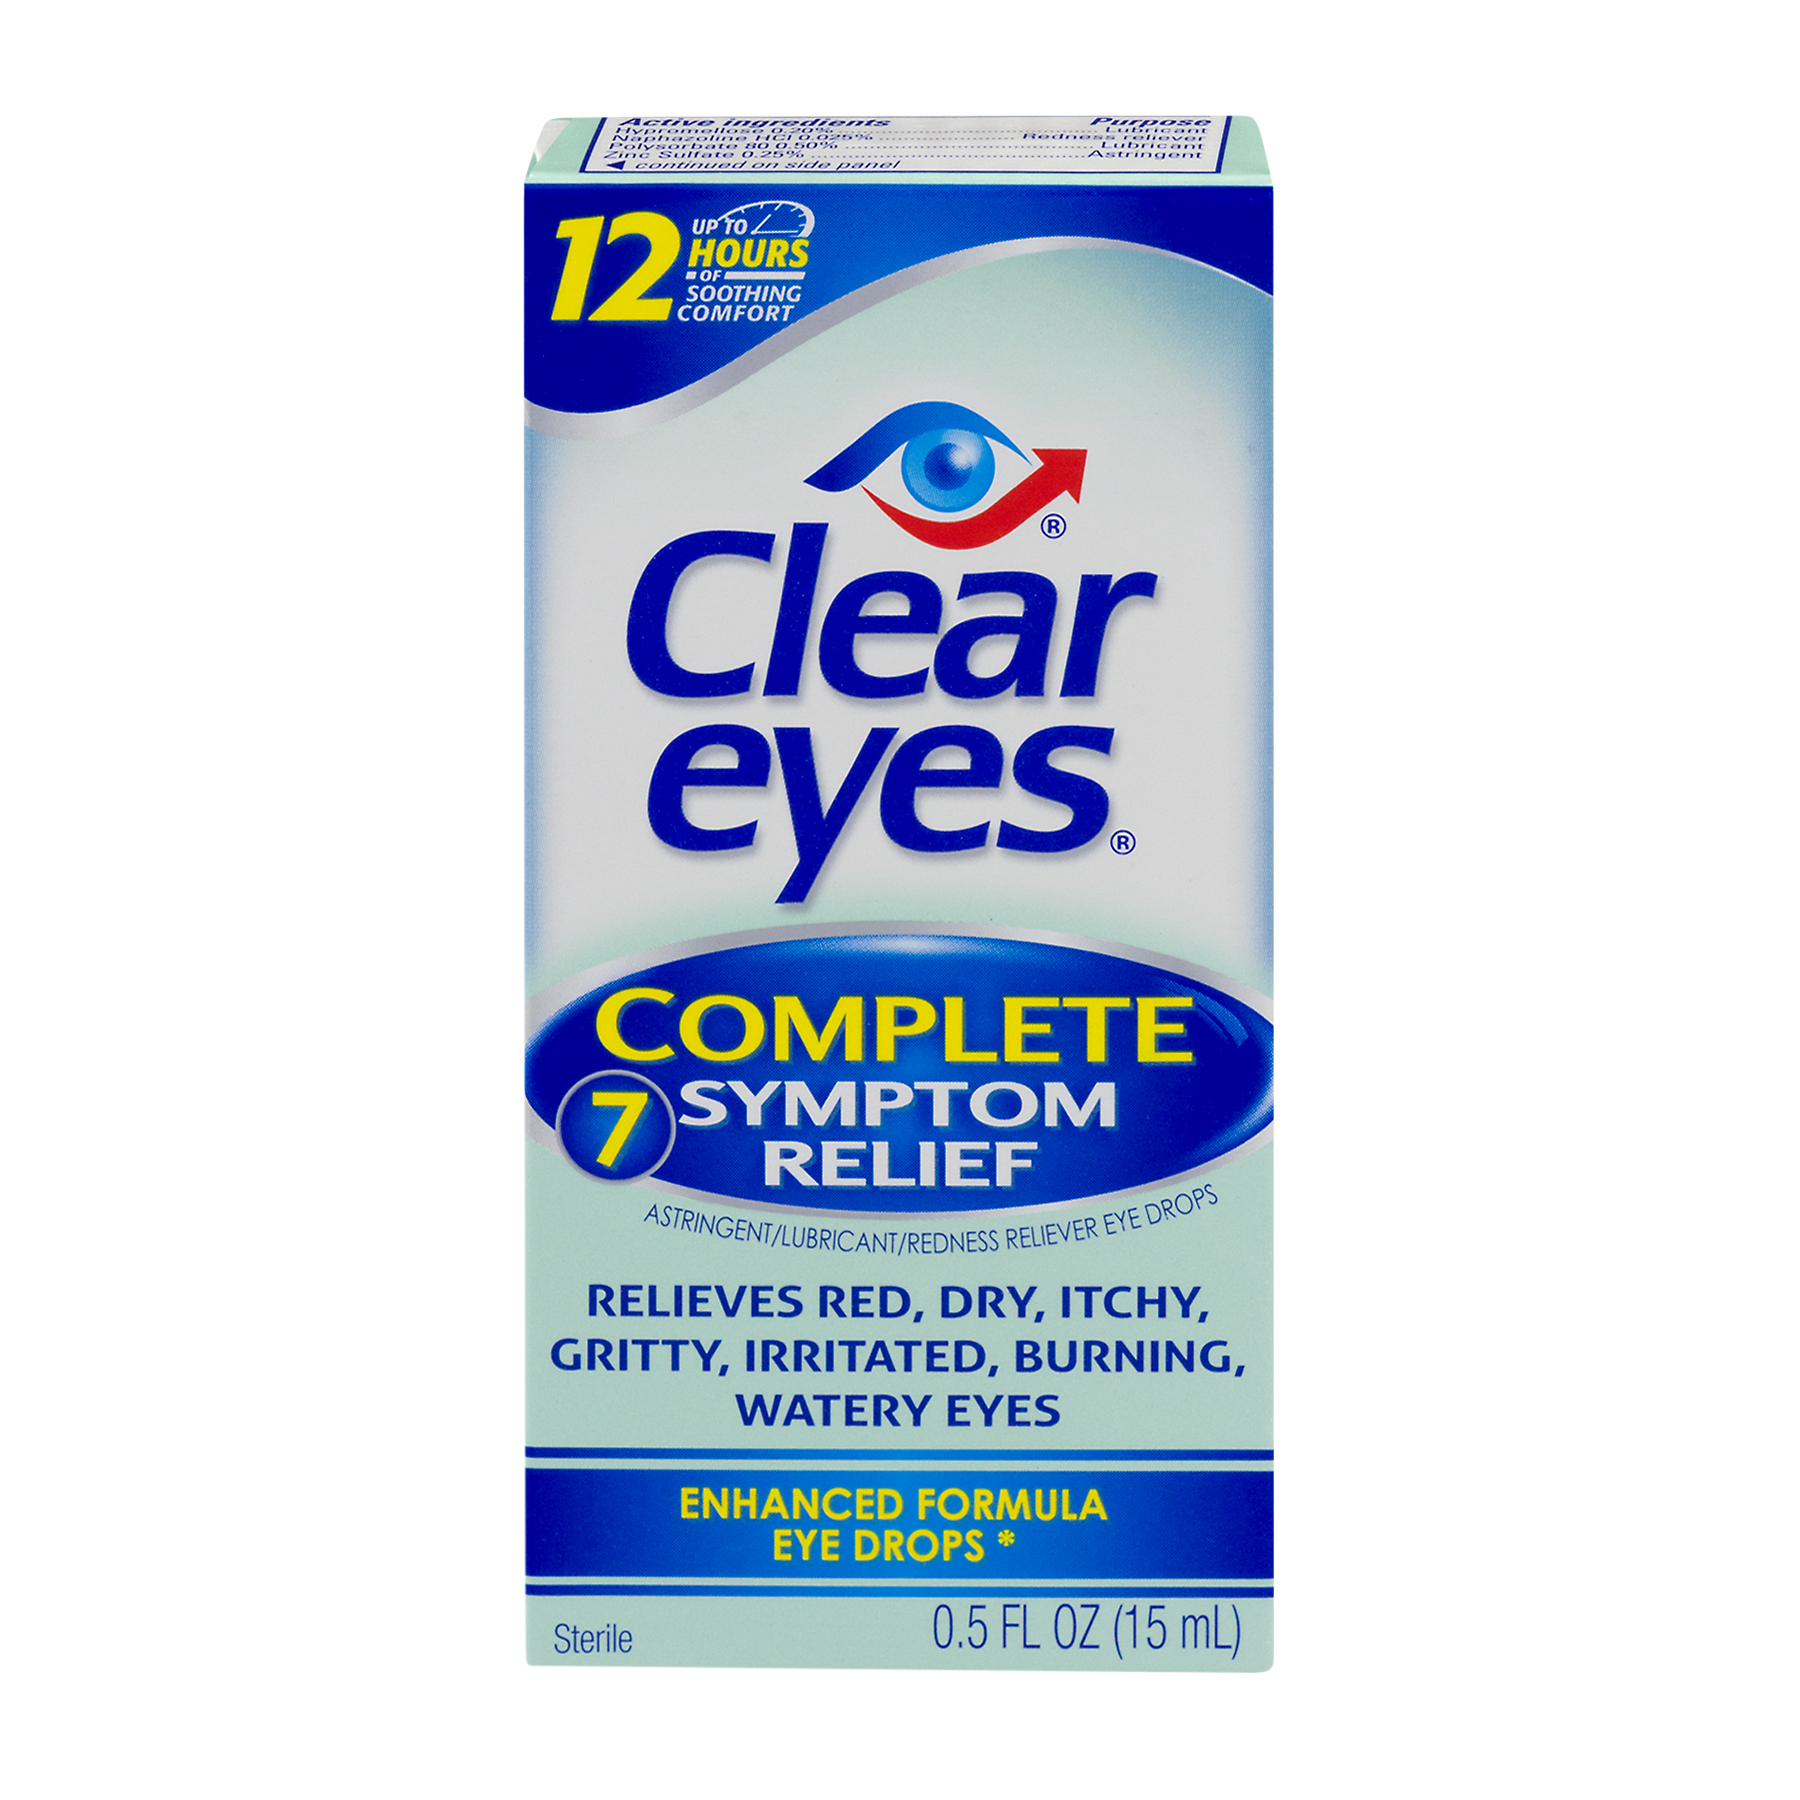 Clear Eyes Complete 7 Symptom Relief Enhanced Formula Eye Drops